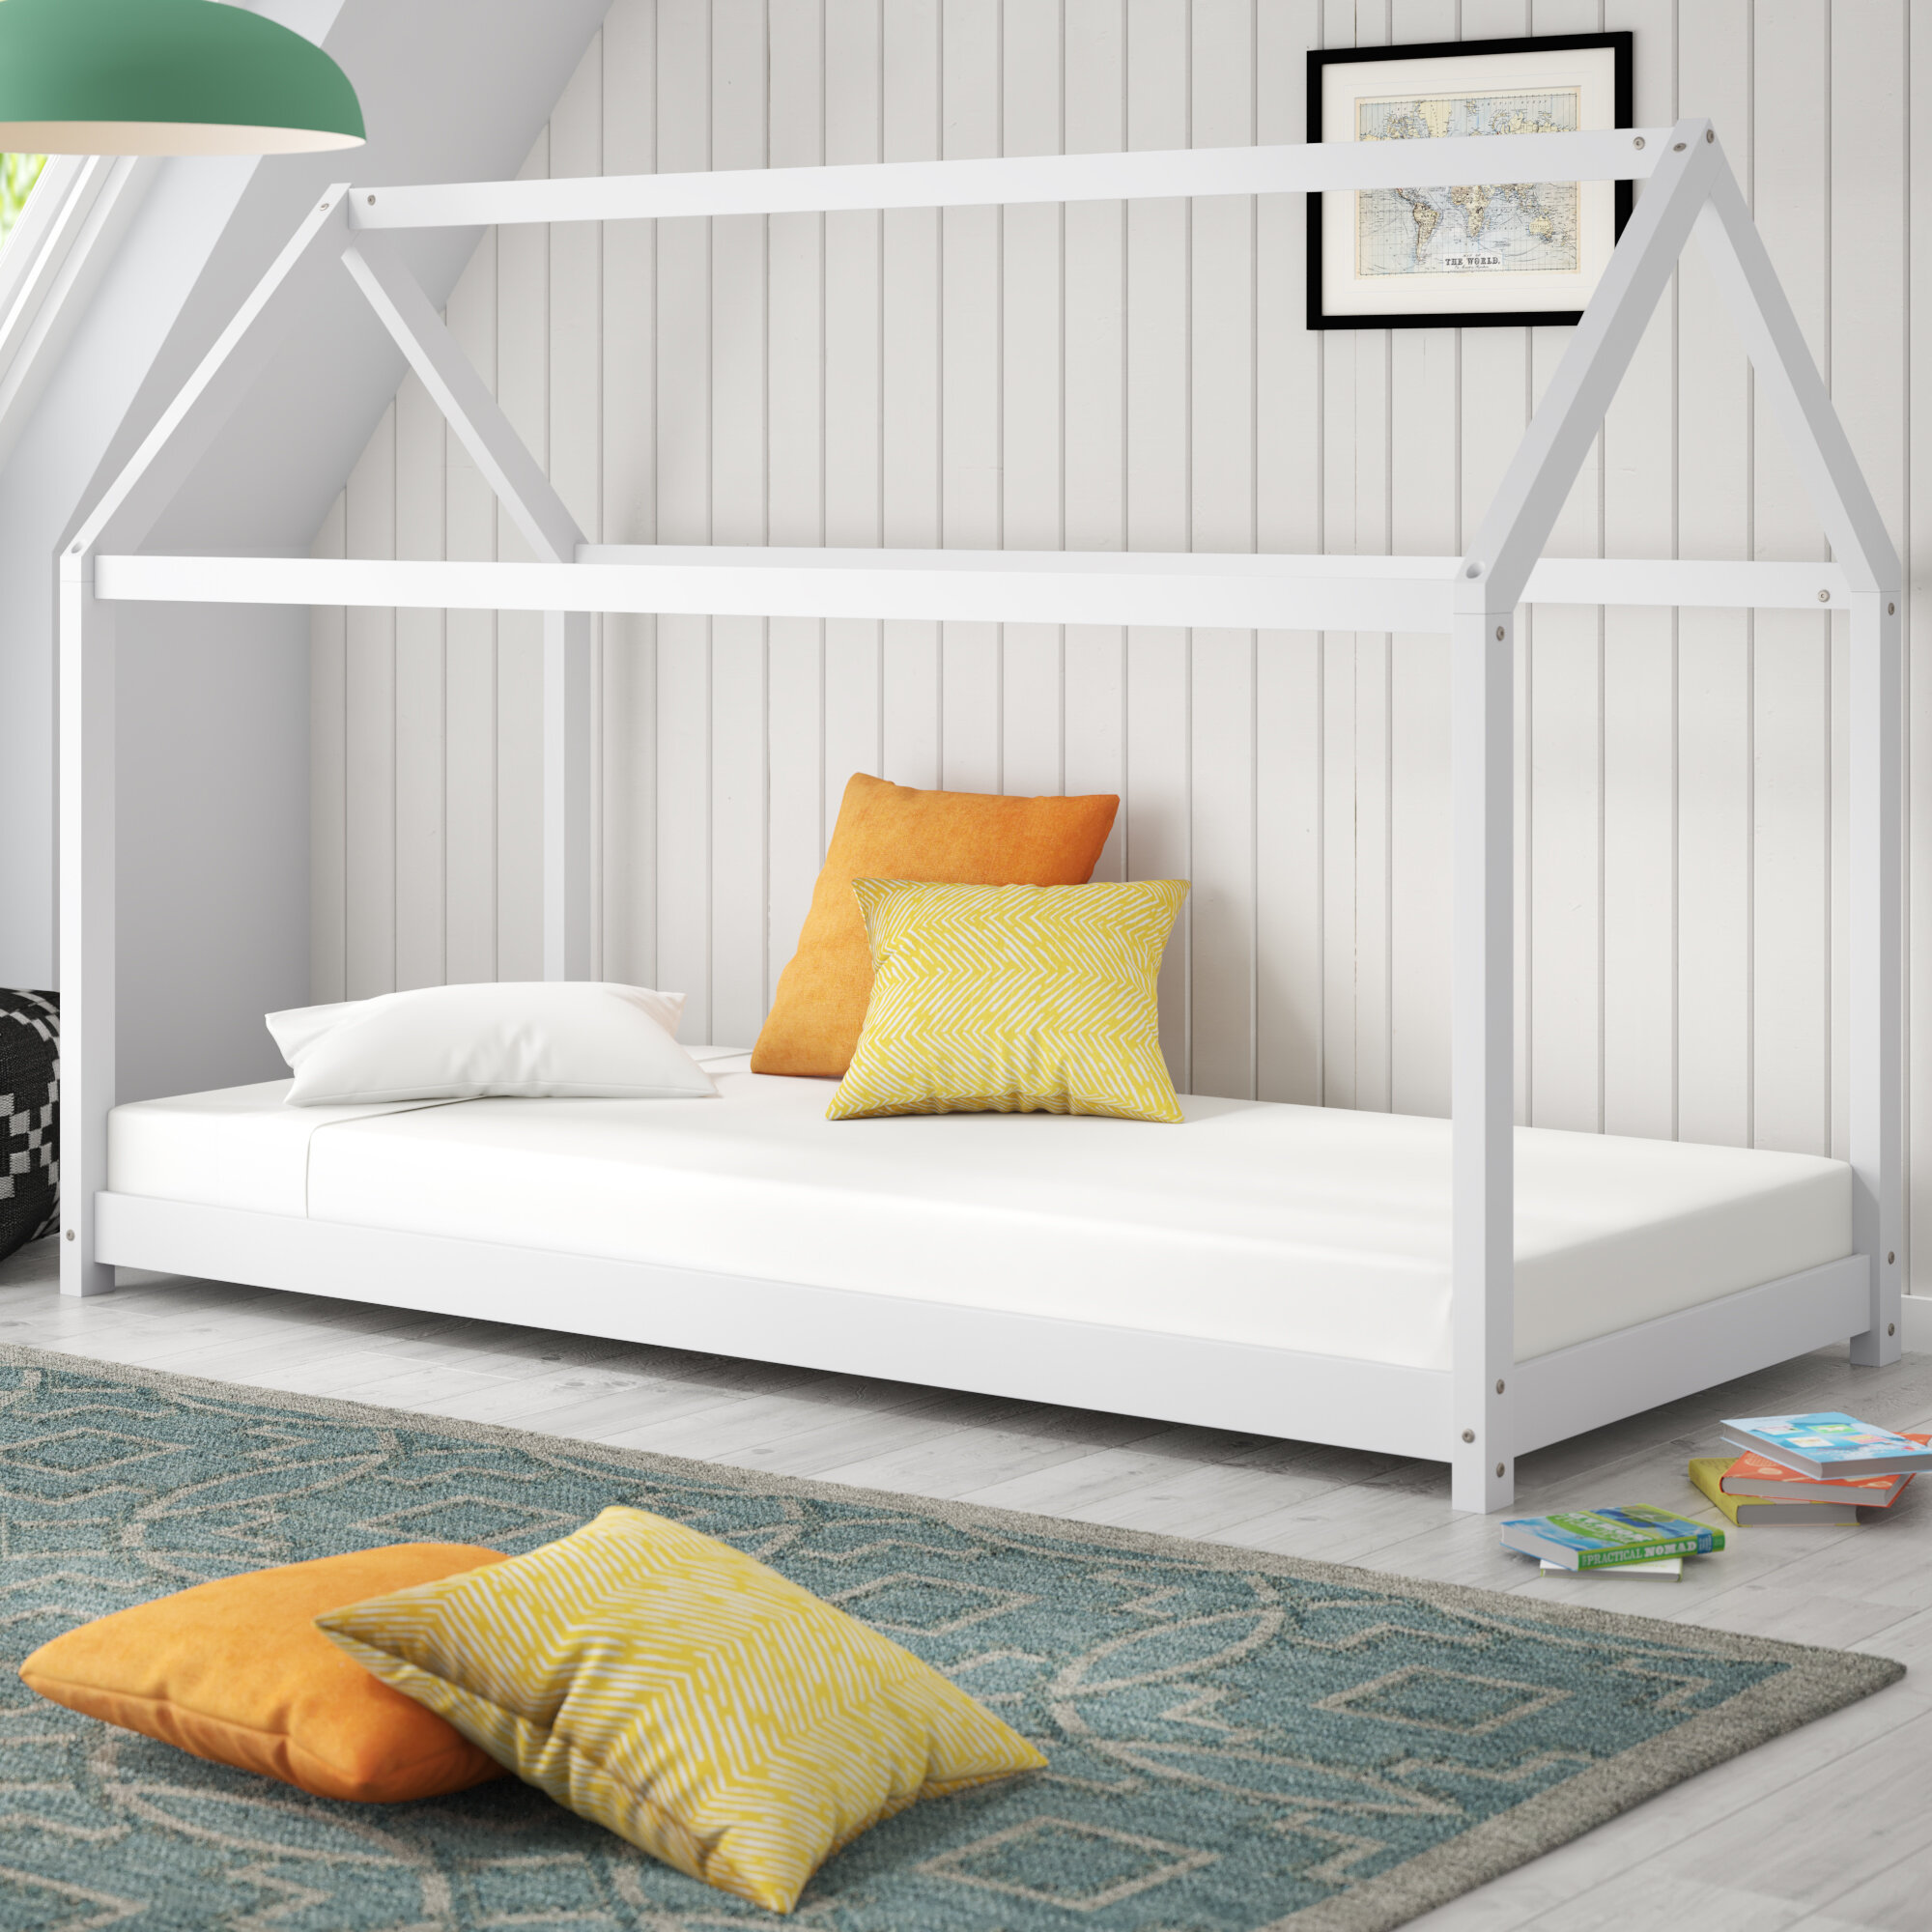 buy online 3a516 1f143 Altman Toddler Canopy Bed